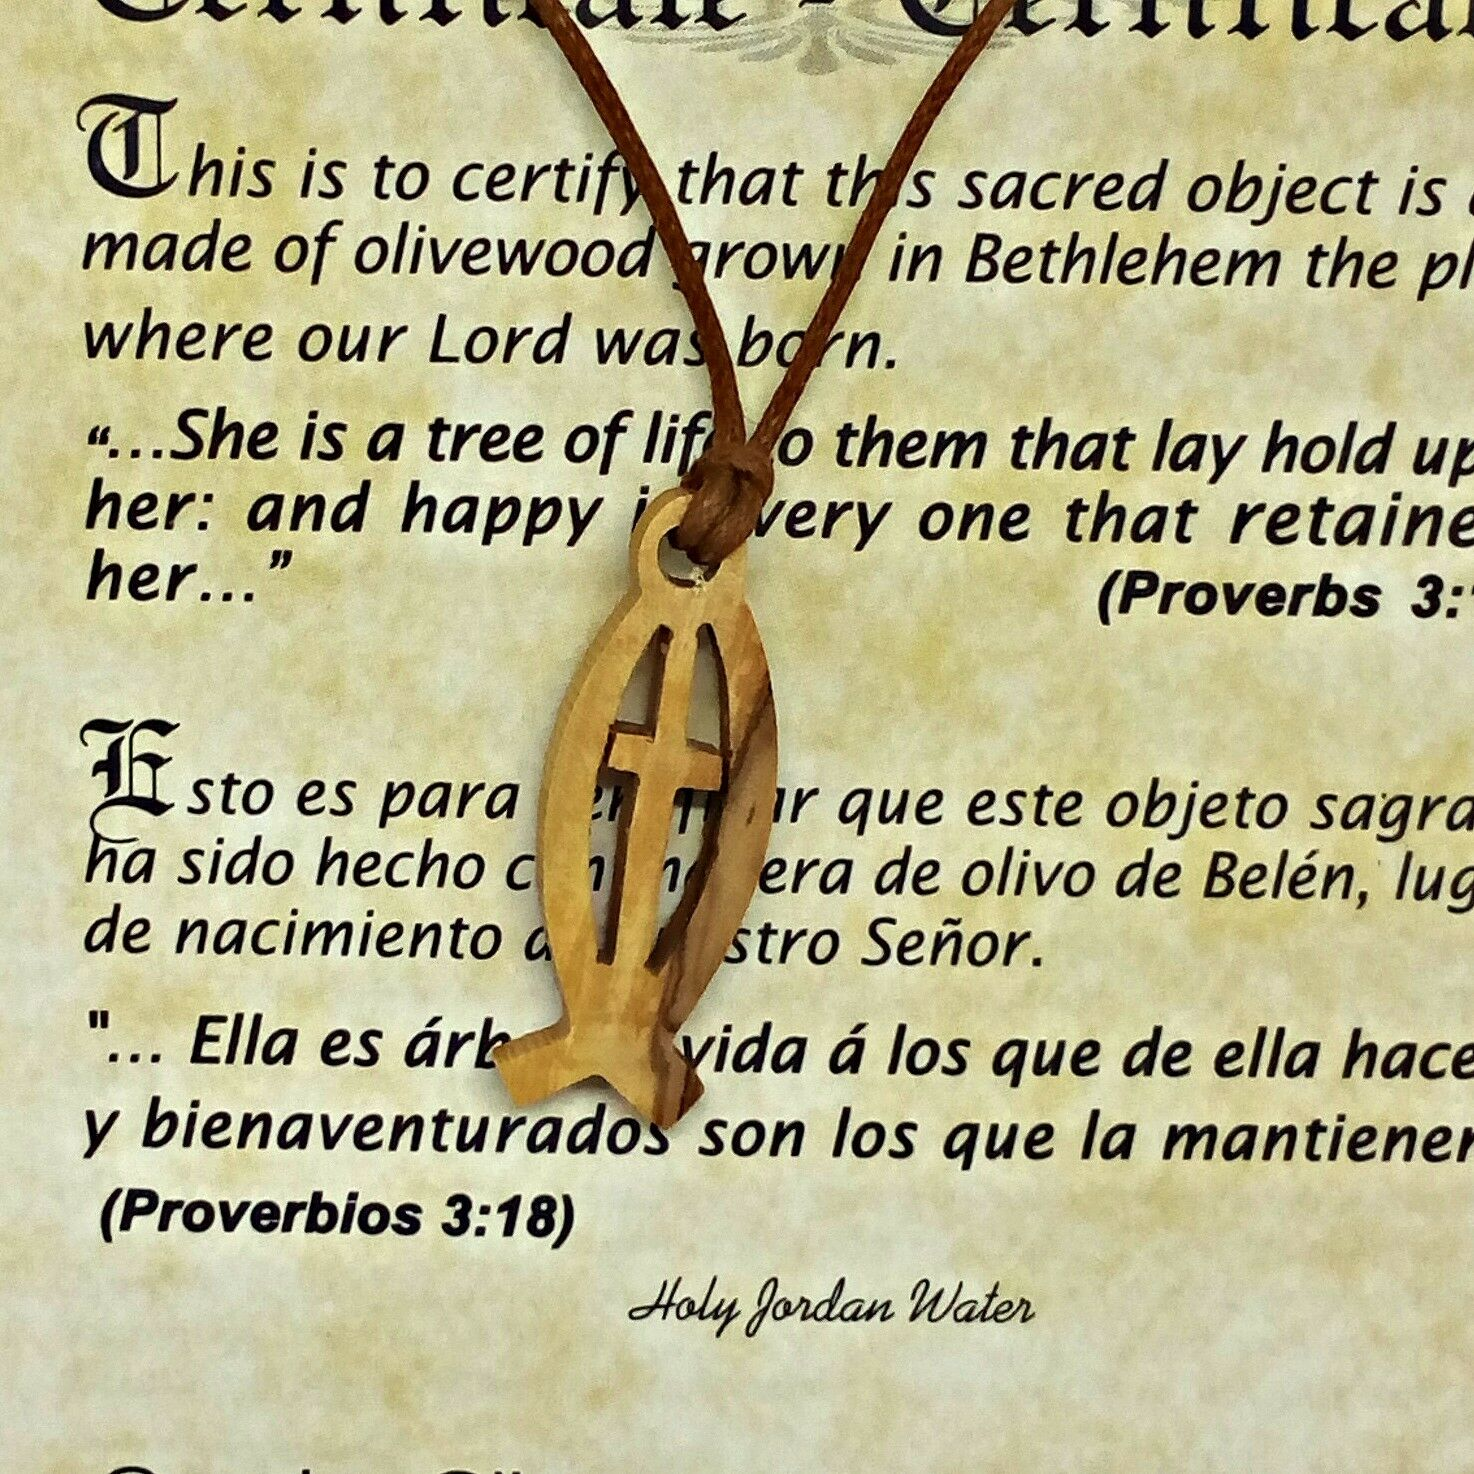 Ichthys fish symbol vertical v 2 olive wood pendant christian picture 1 of 5 biocorpaavc Choice Image